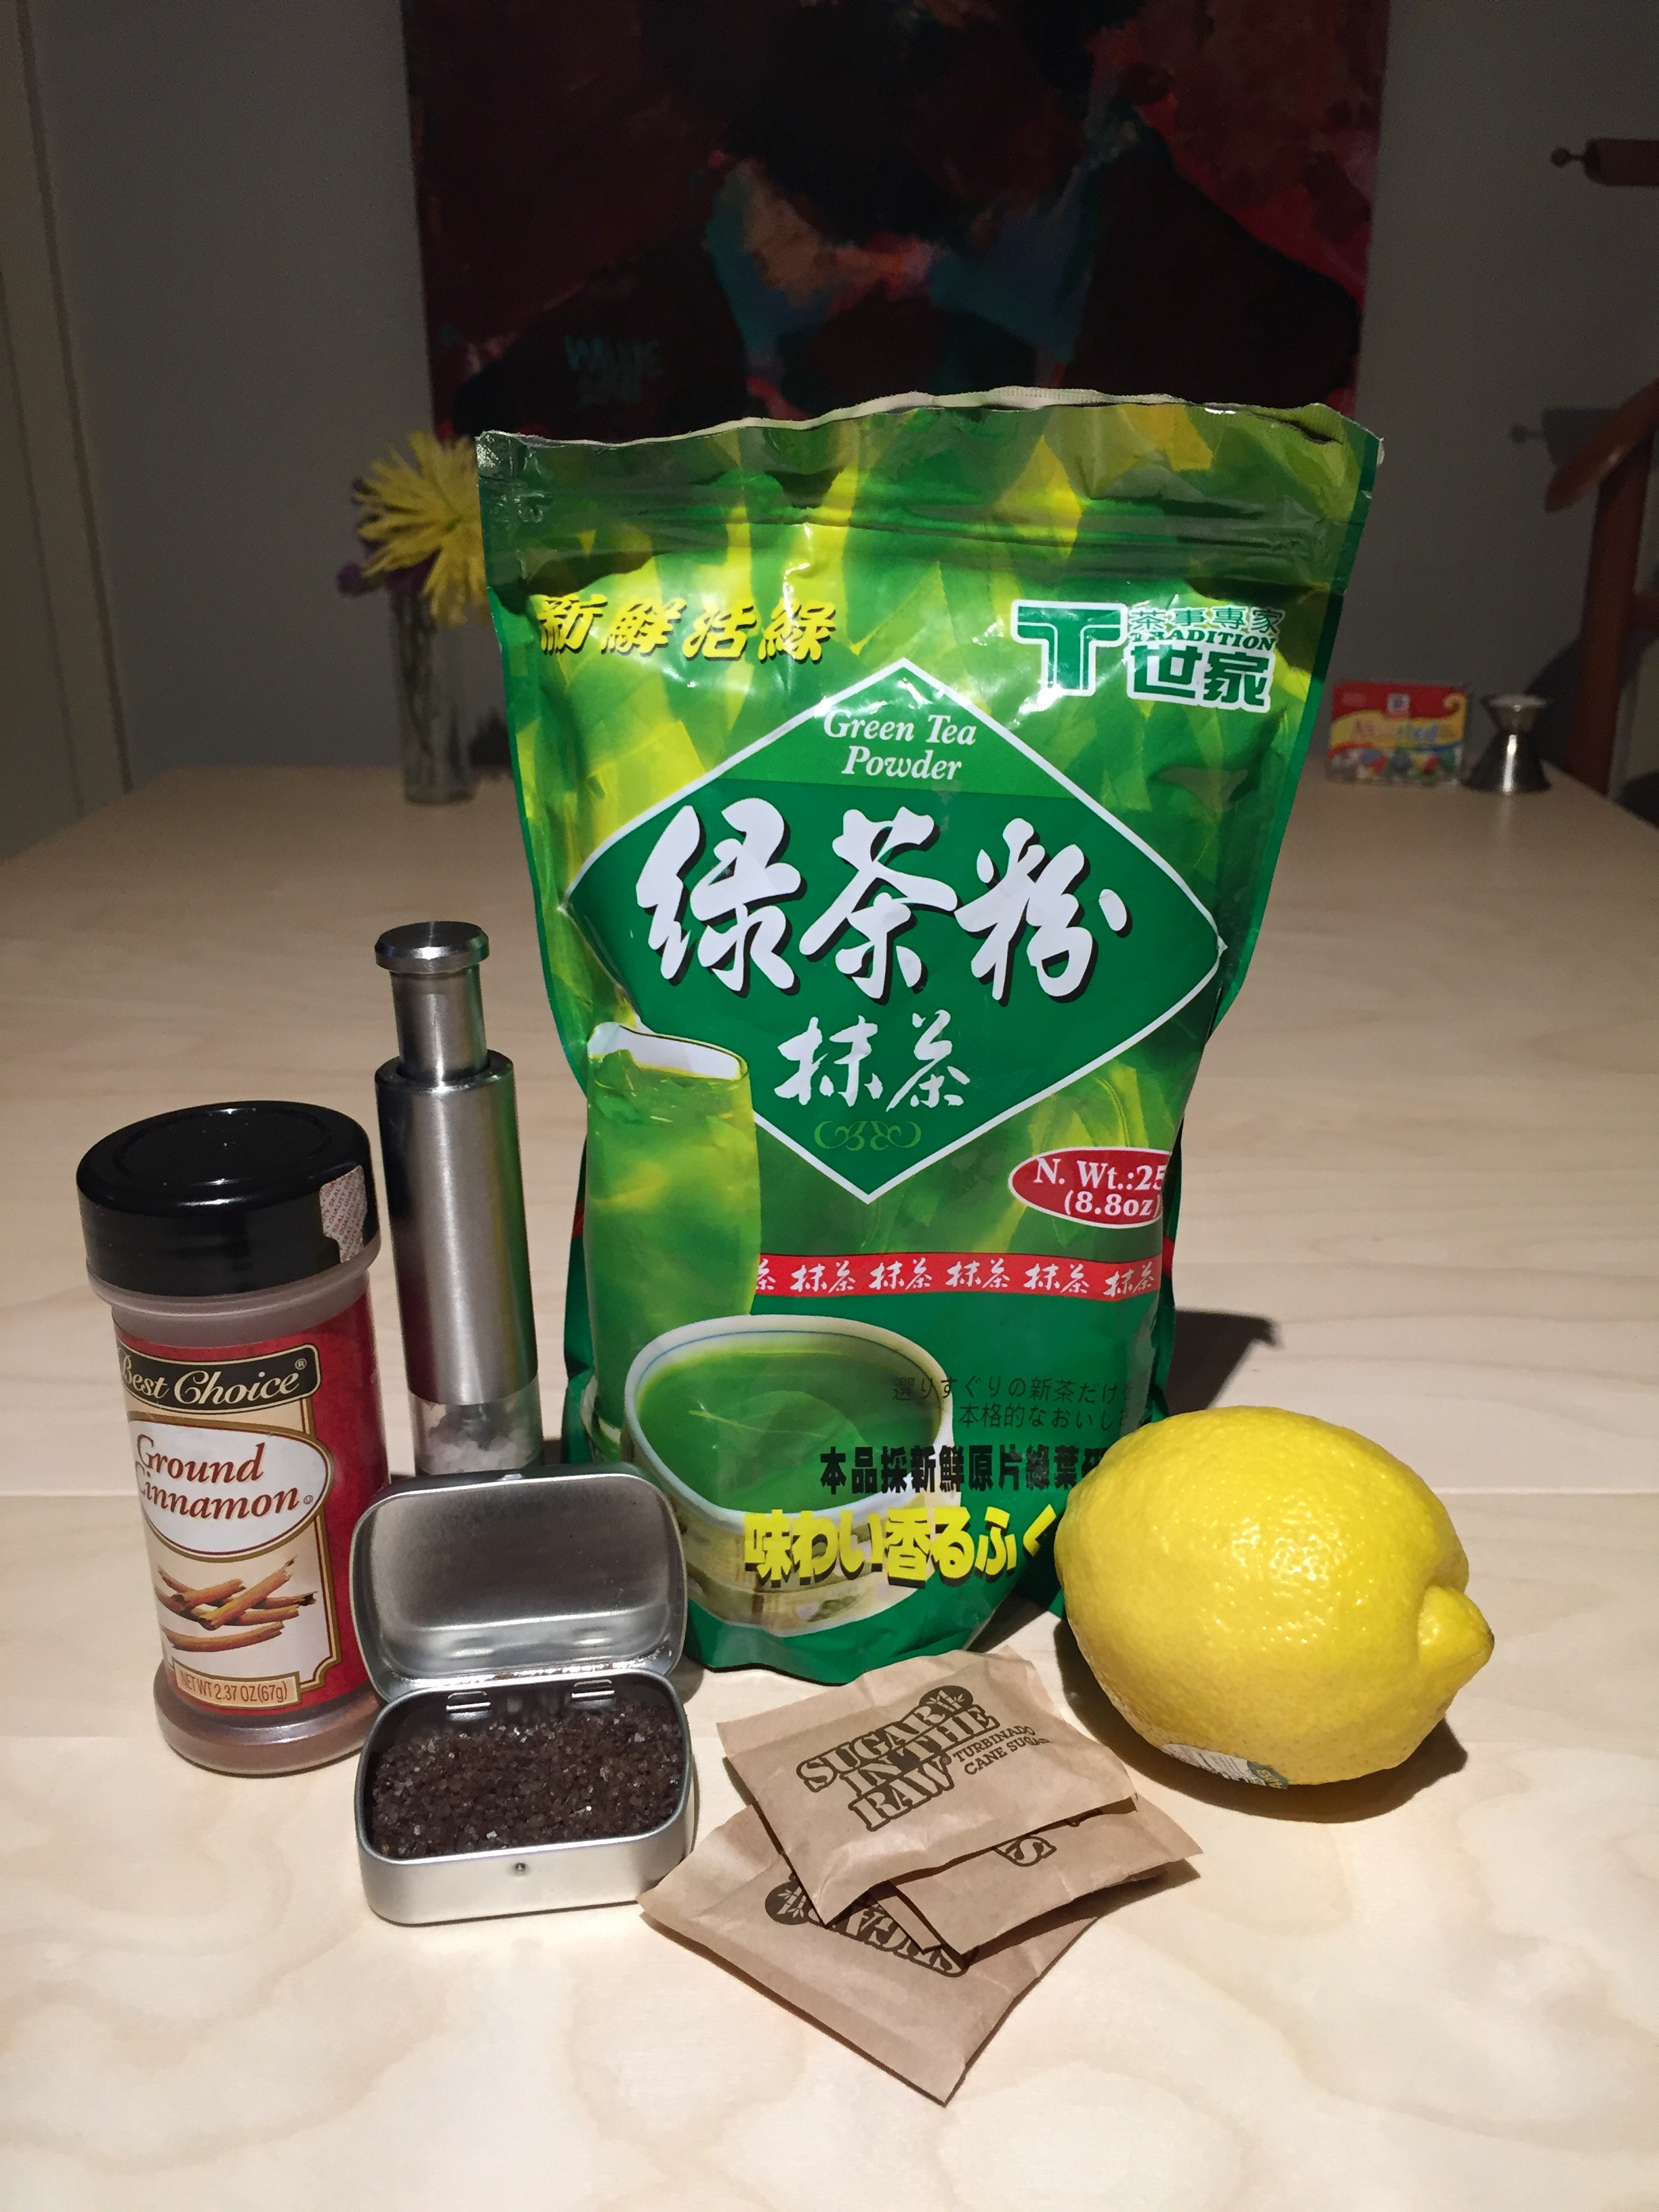 Picture of Ingredients / Tools